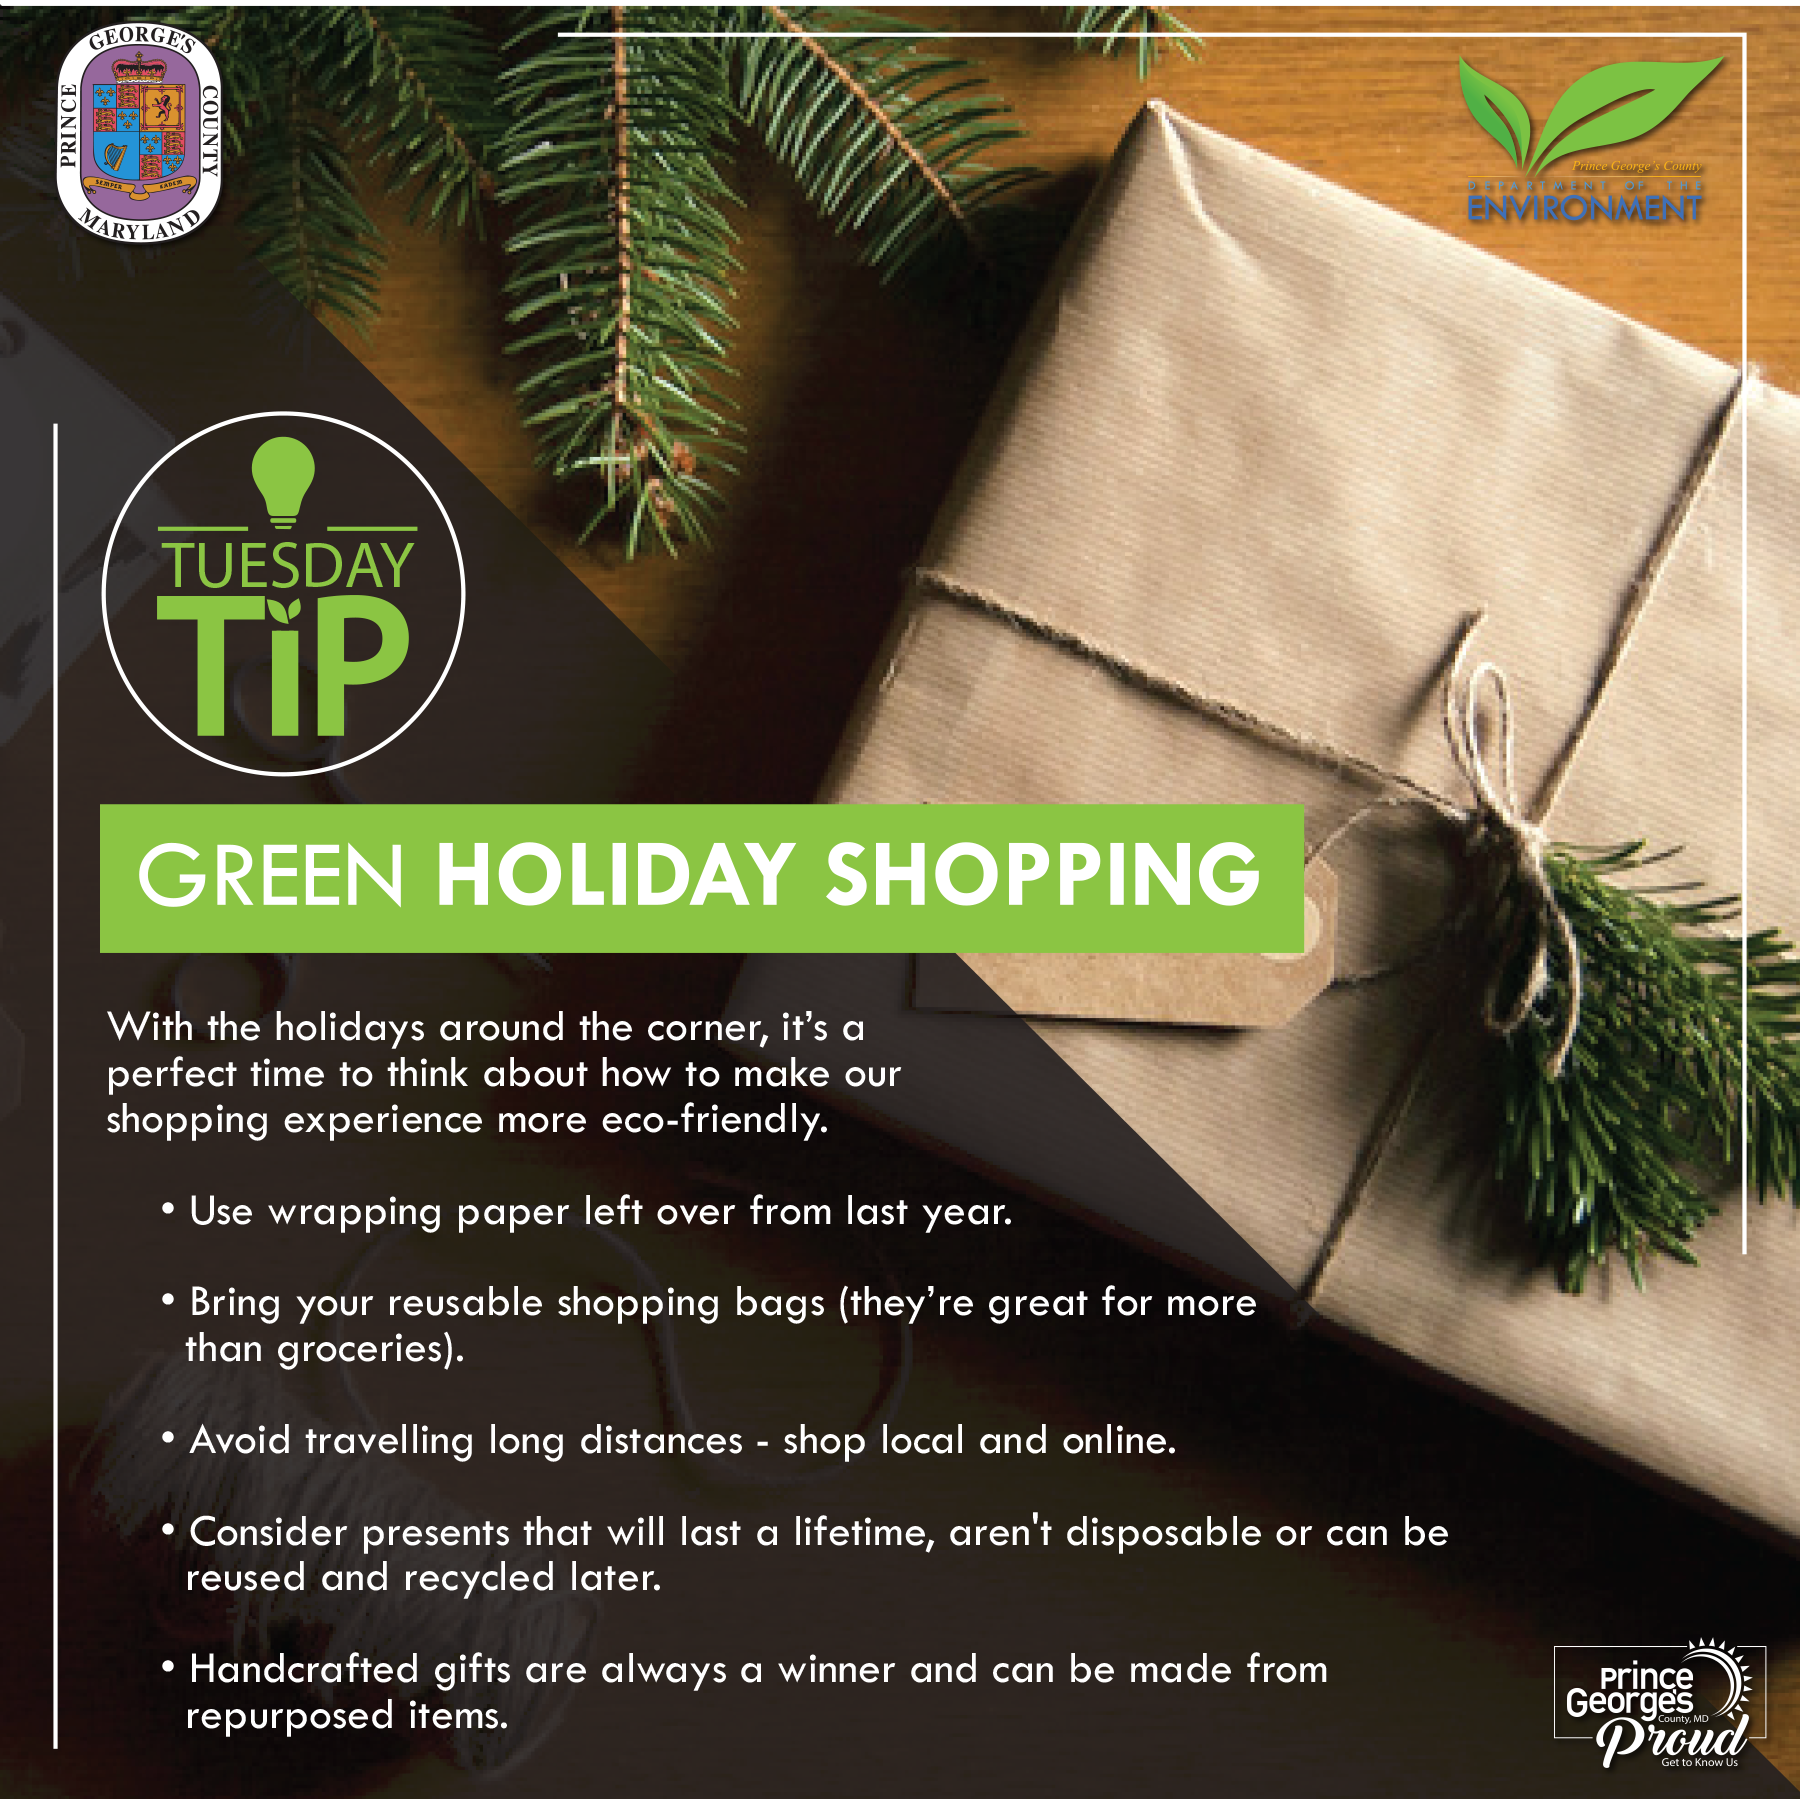 Tues Tip 12.15.20 GreenHoliday eng